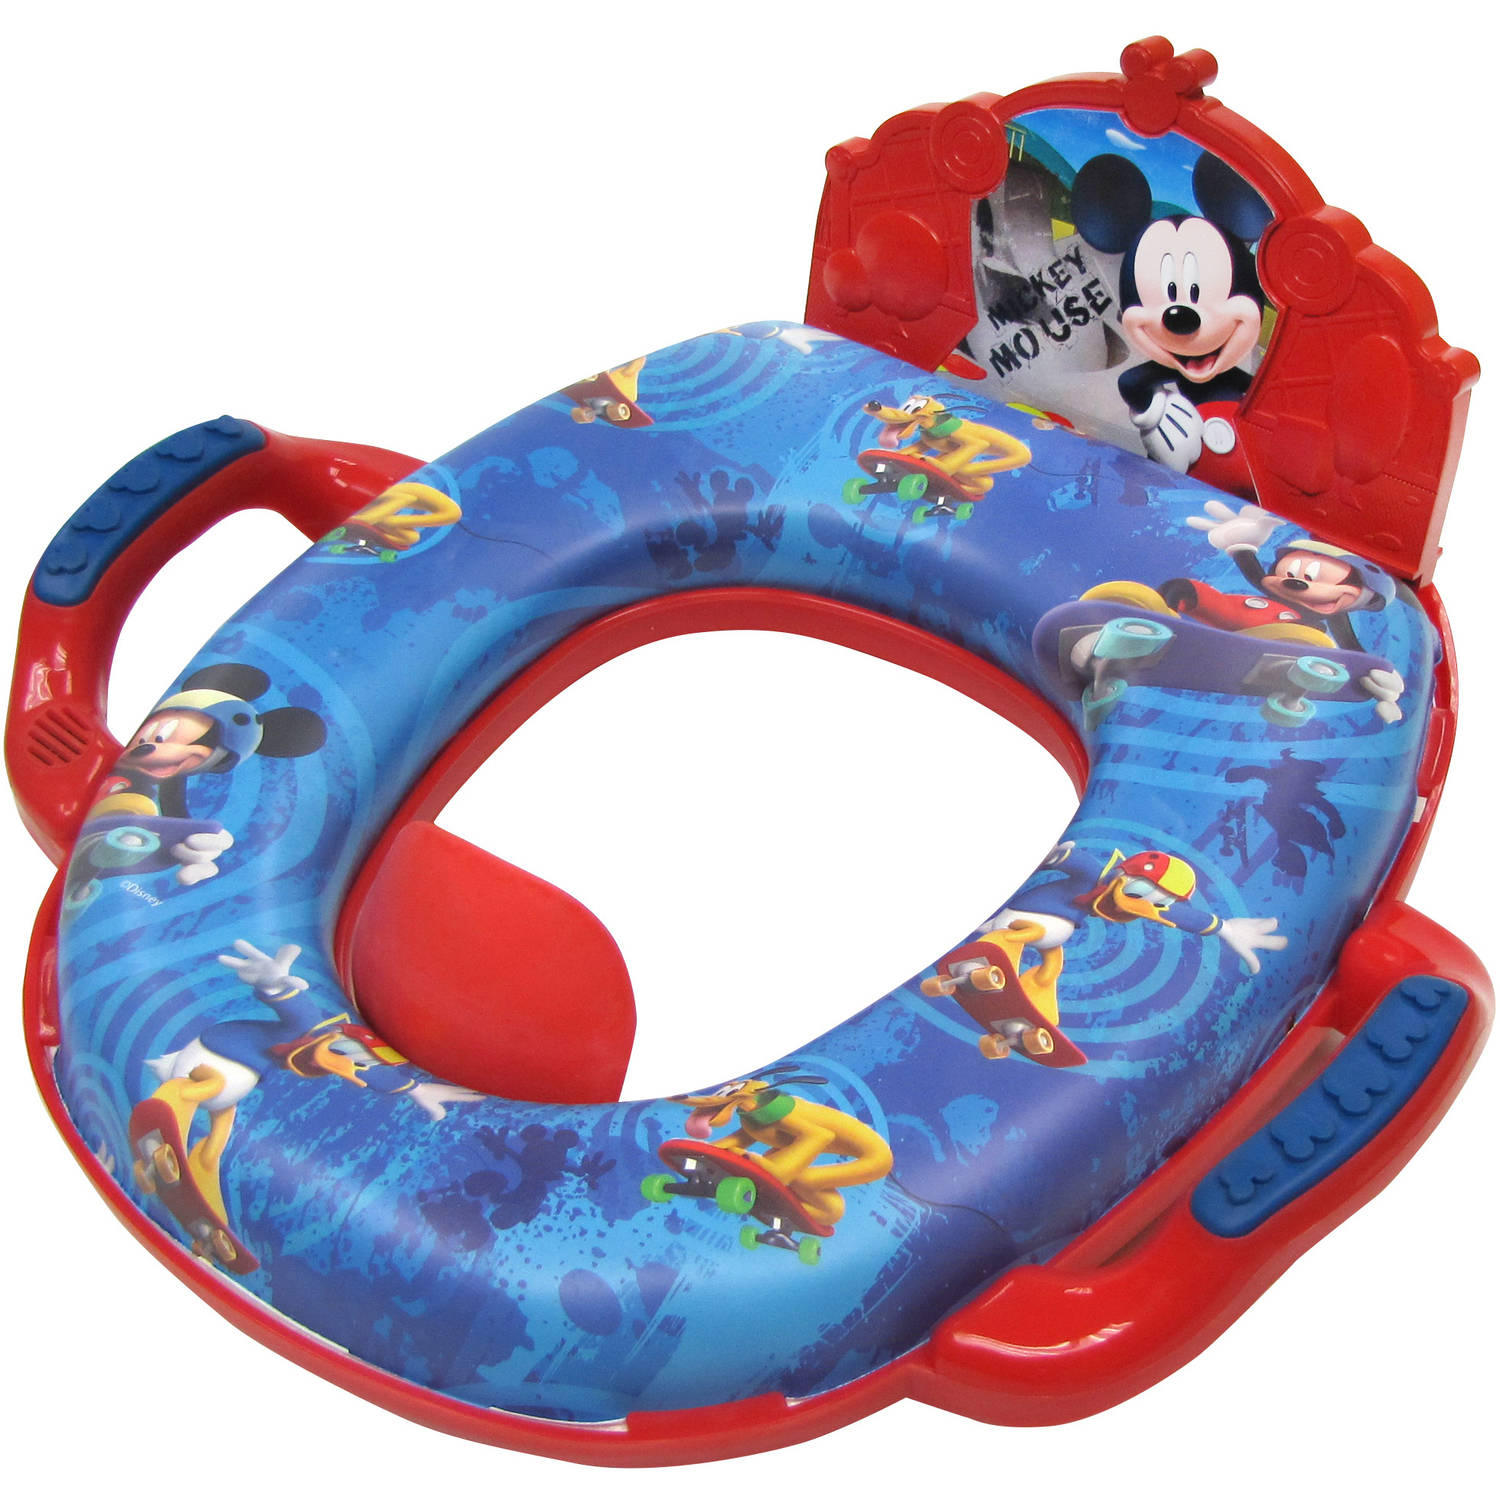 Disney Mickey Mouse Soft Potty with Sound